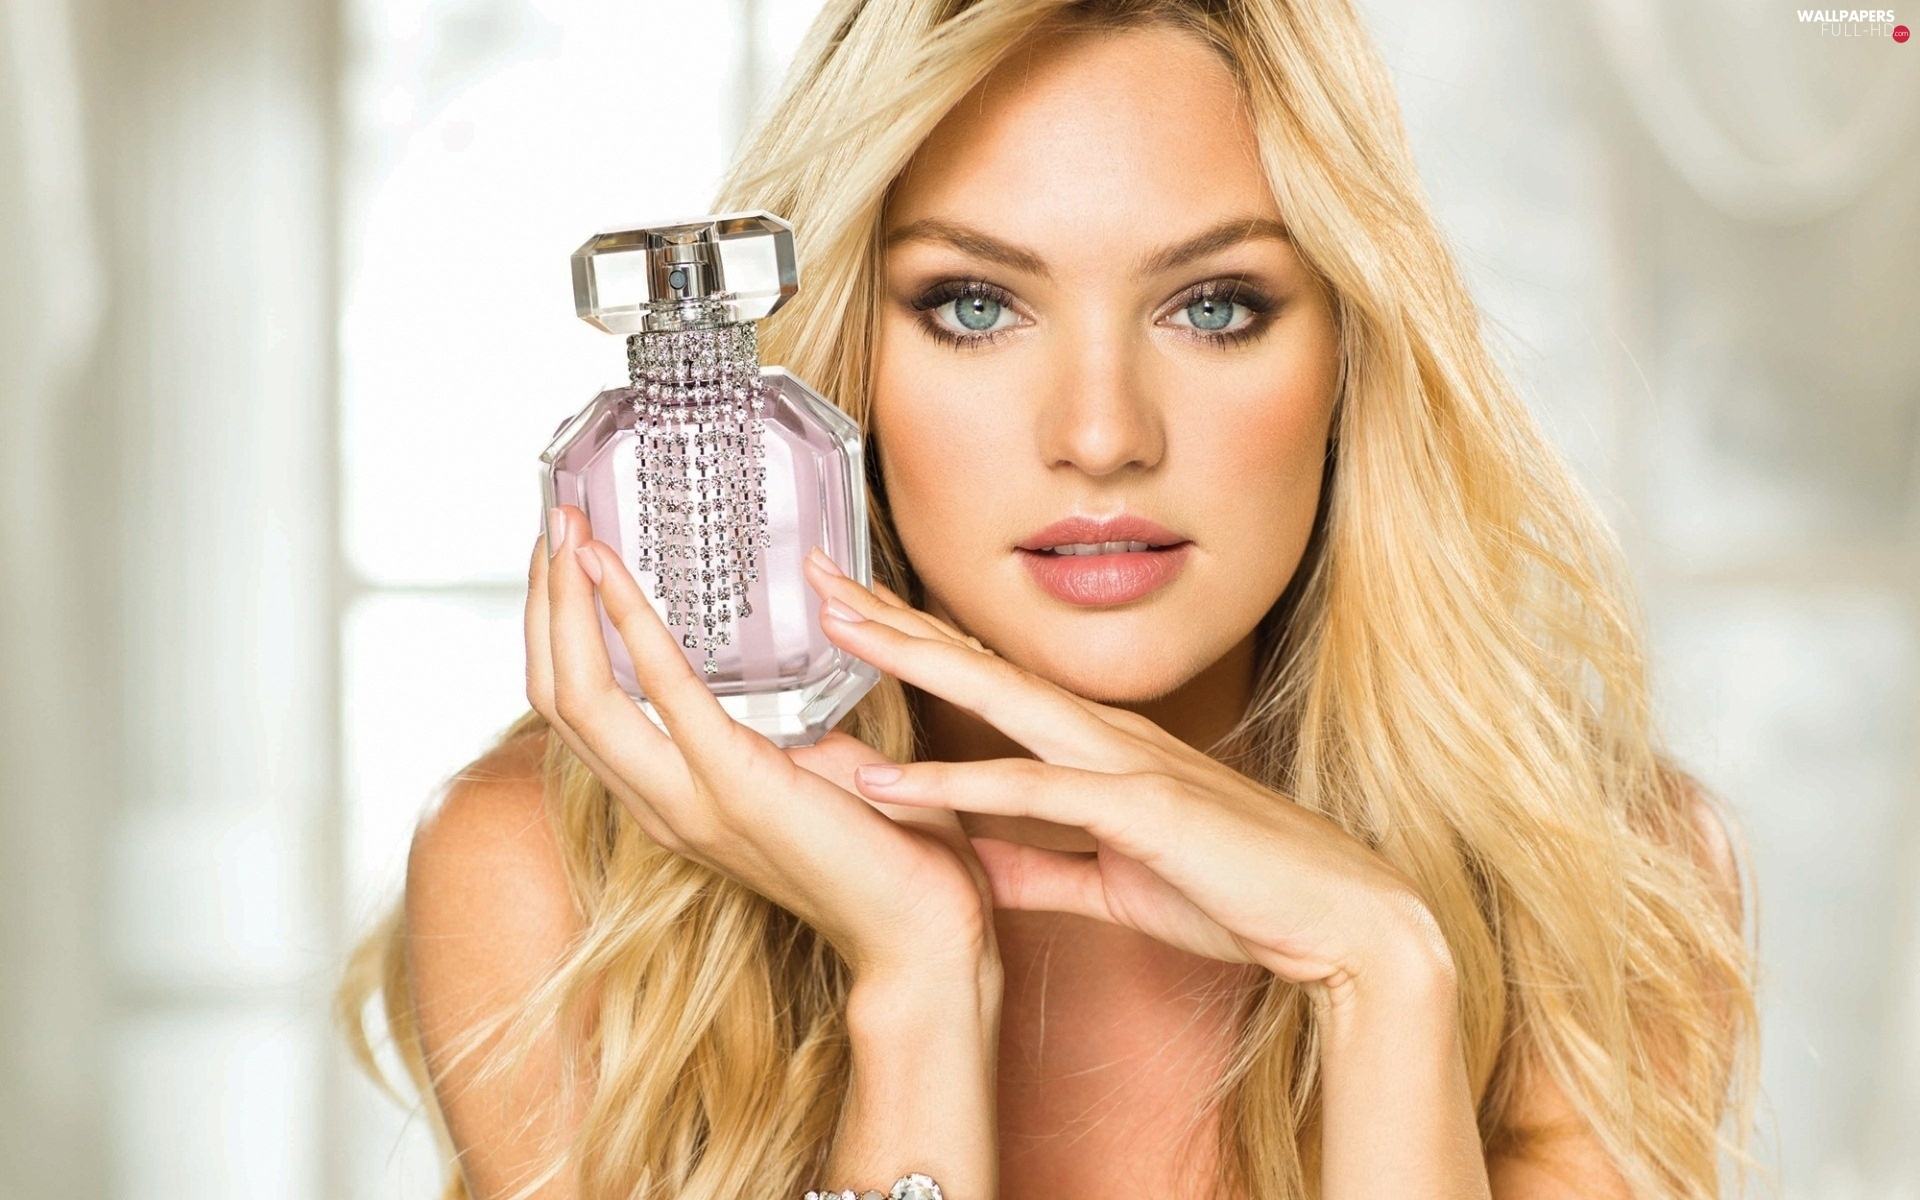 make-up, perfume, Blonde